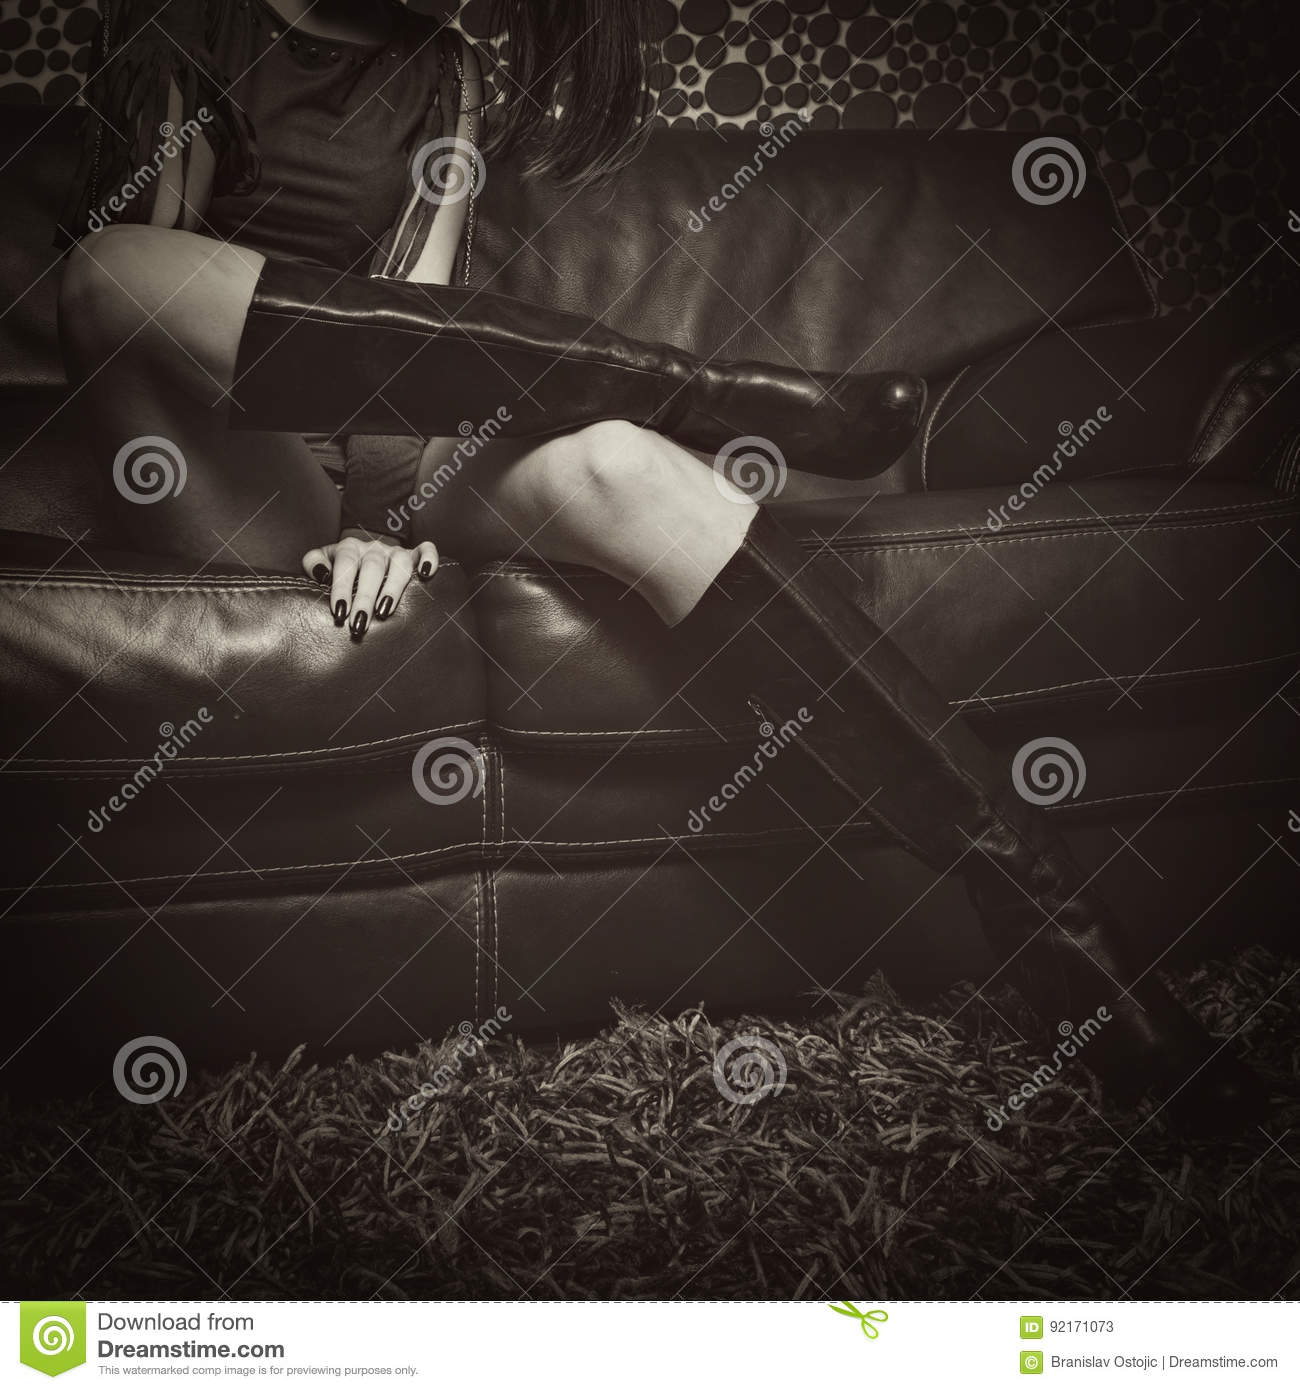 Fashion girl in high heel boots on leather sofa